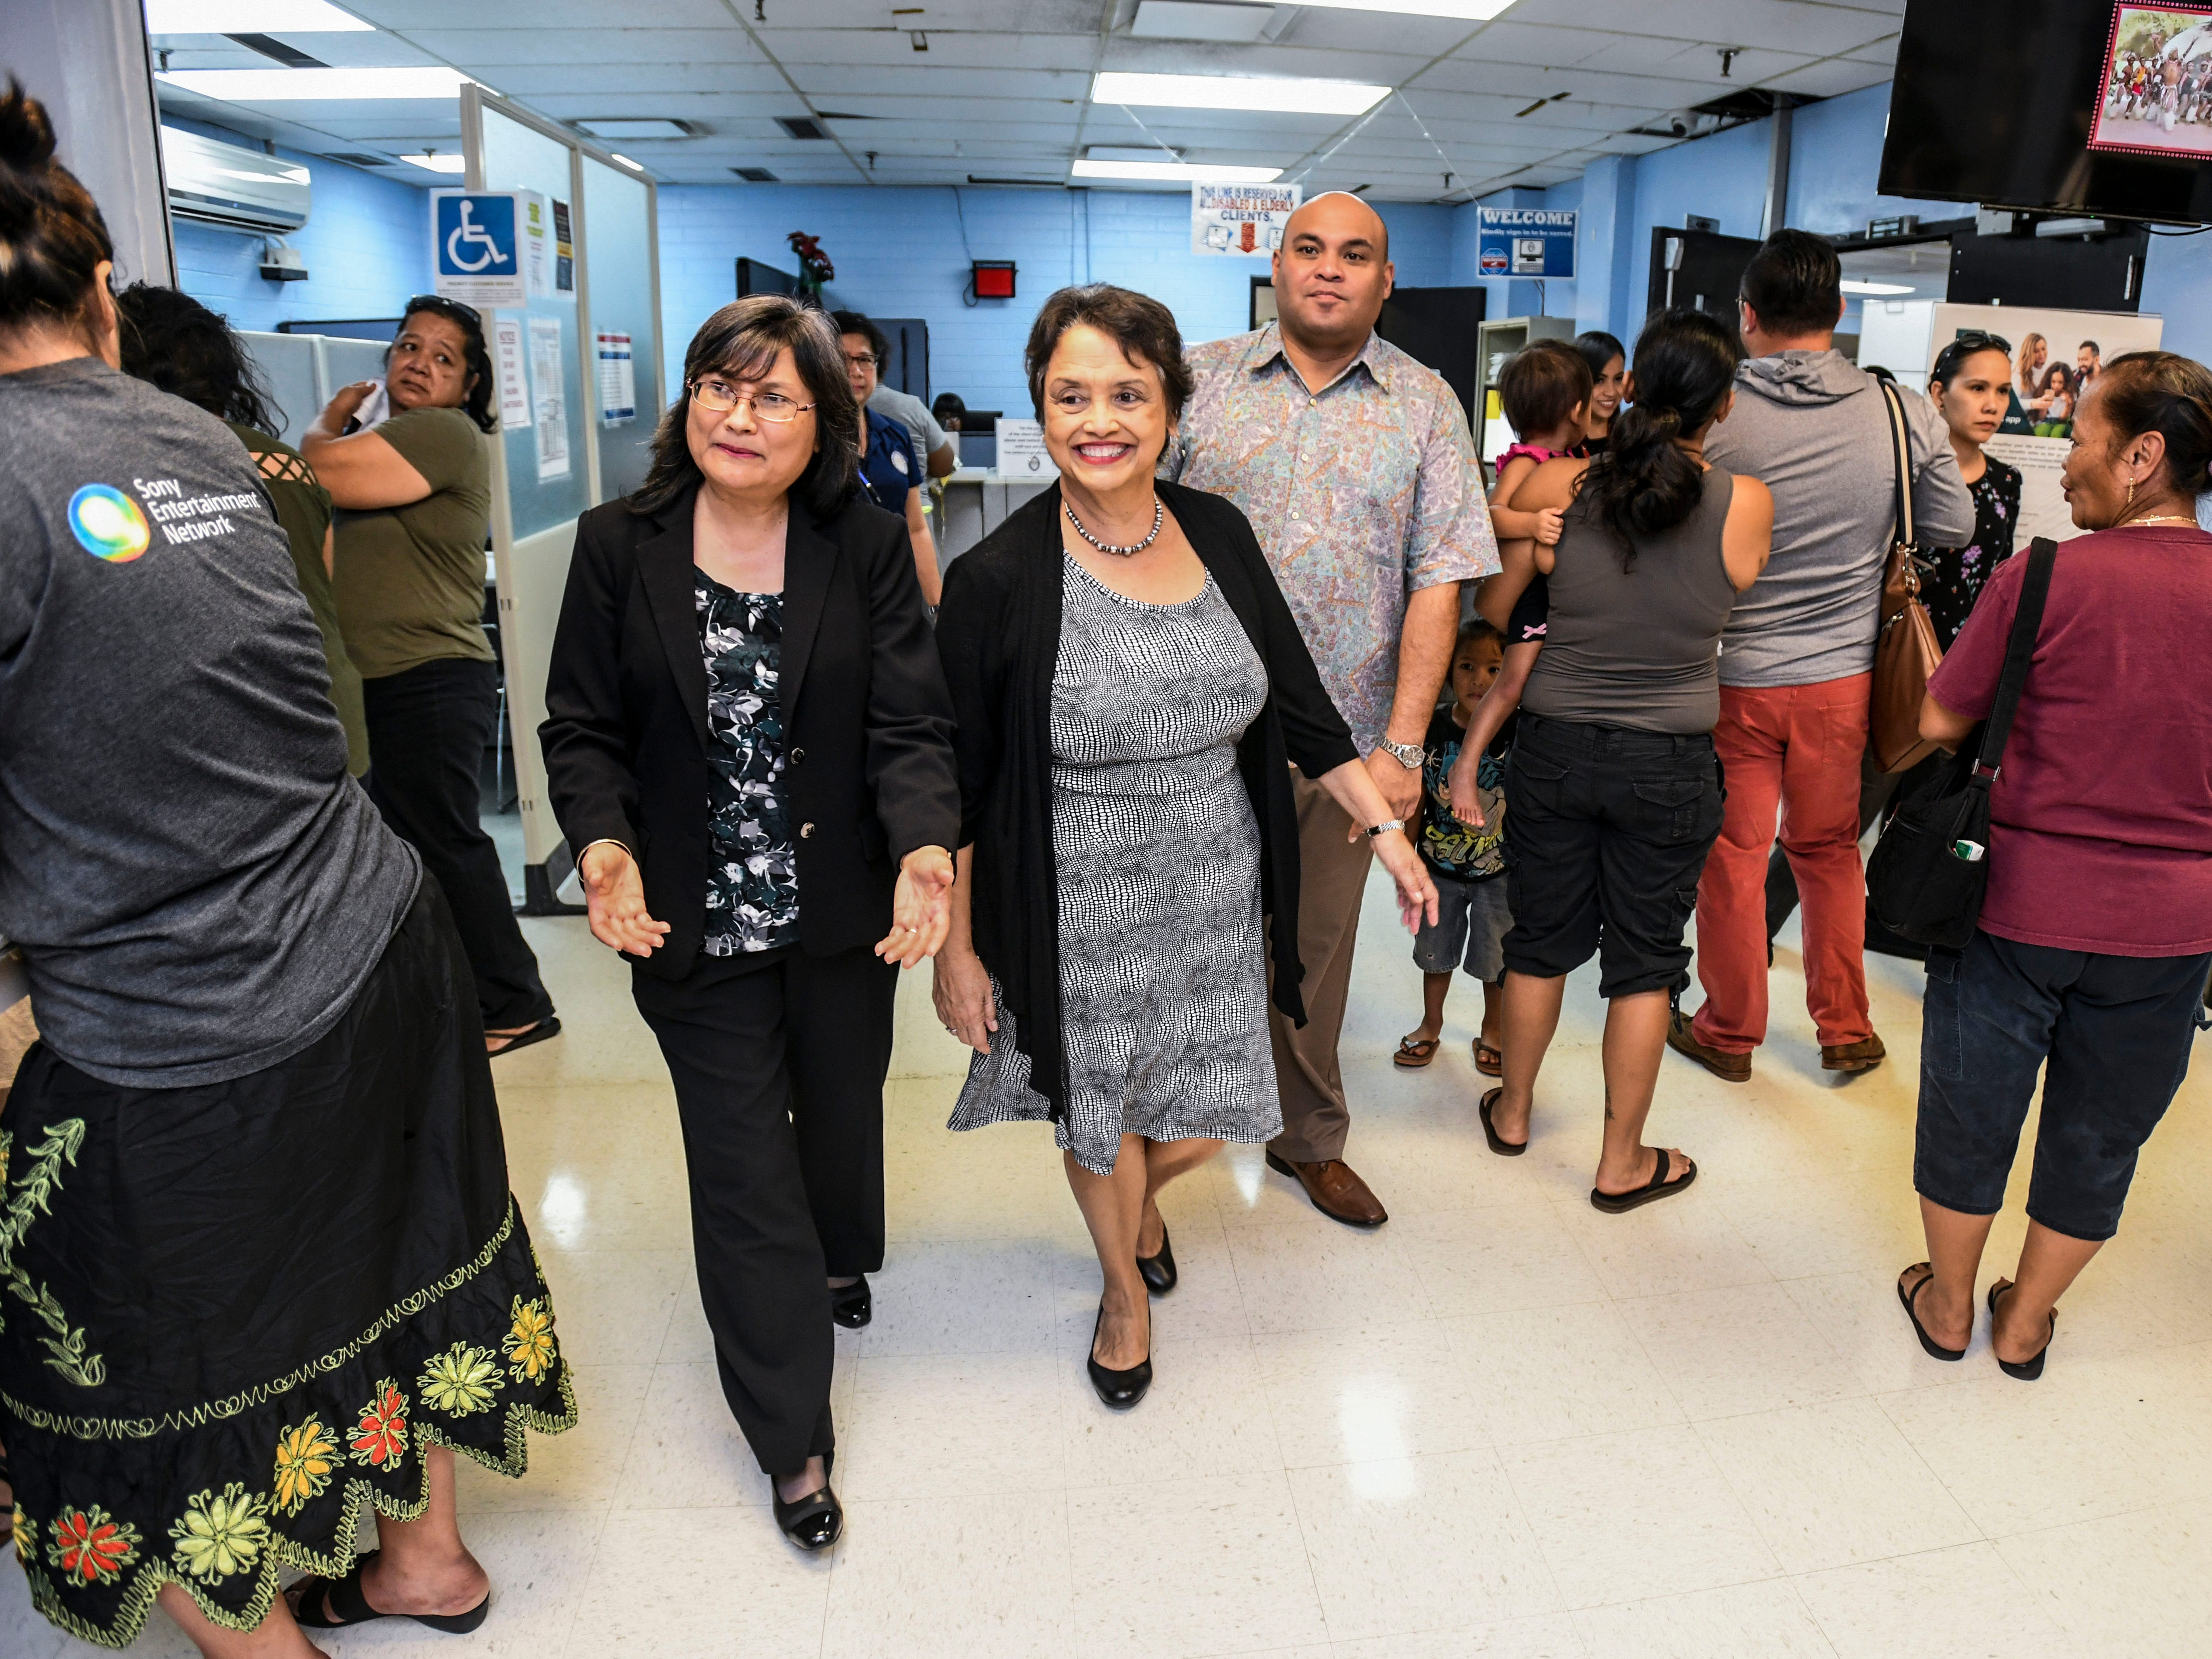 Gov. Lou Leon Guerrero, center, and Lt. Gov. Josh Tenorio, walk through residents seeking assistance within the Bureau of Economic Security SNAP/Public Assistance Division as they are lead on a tour of the Department of Public Health and Social Services by Acting Director Linda Unpingco DeNorcey on Wednesday, Feb. 13, 2019.